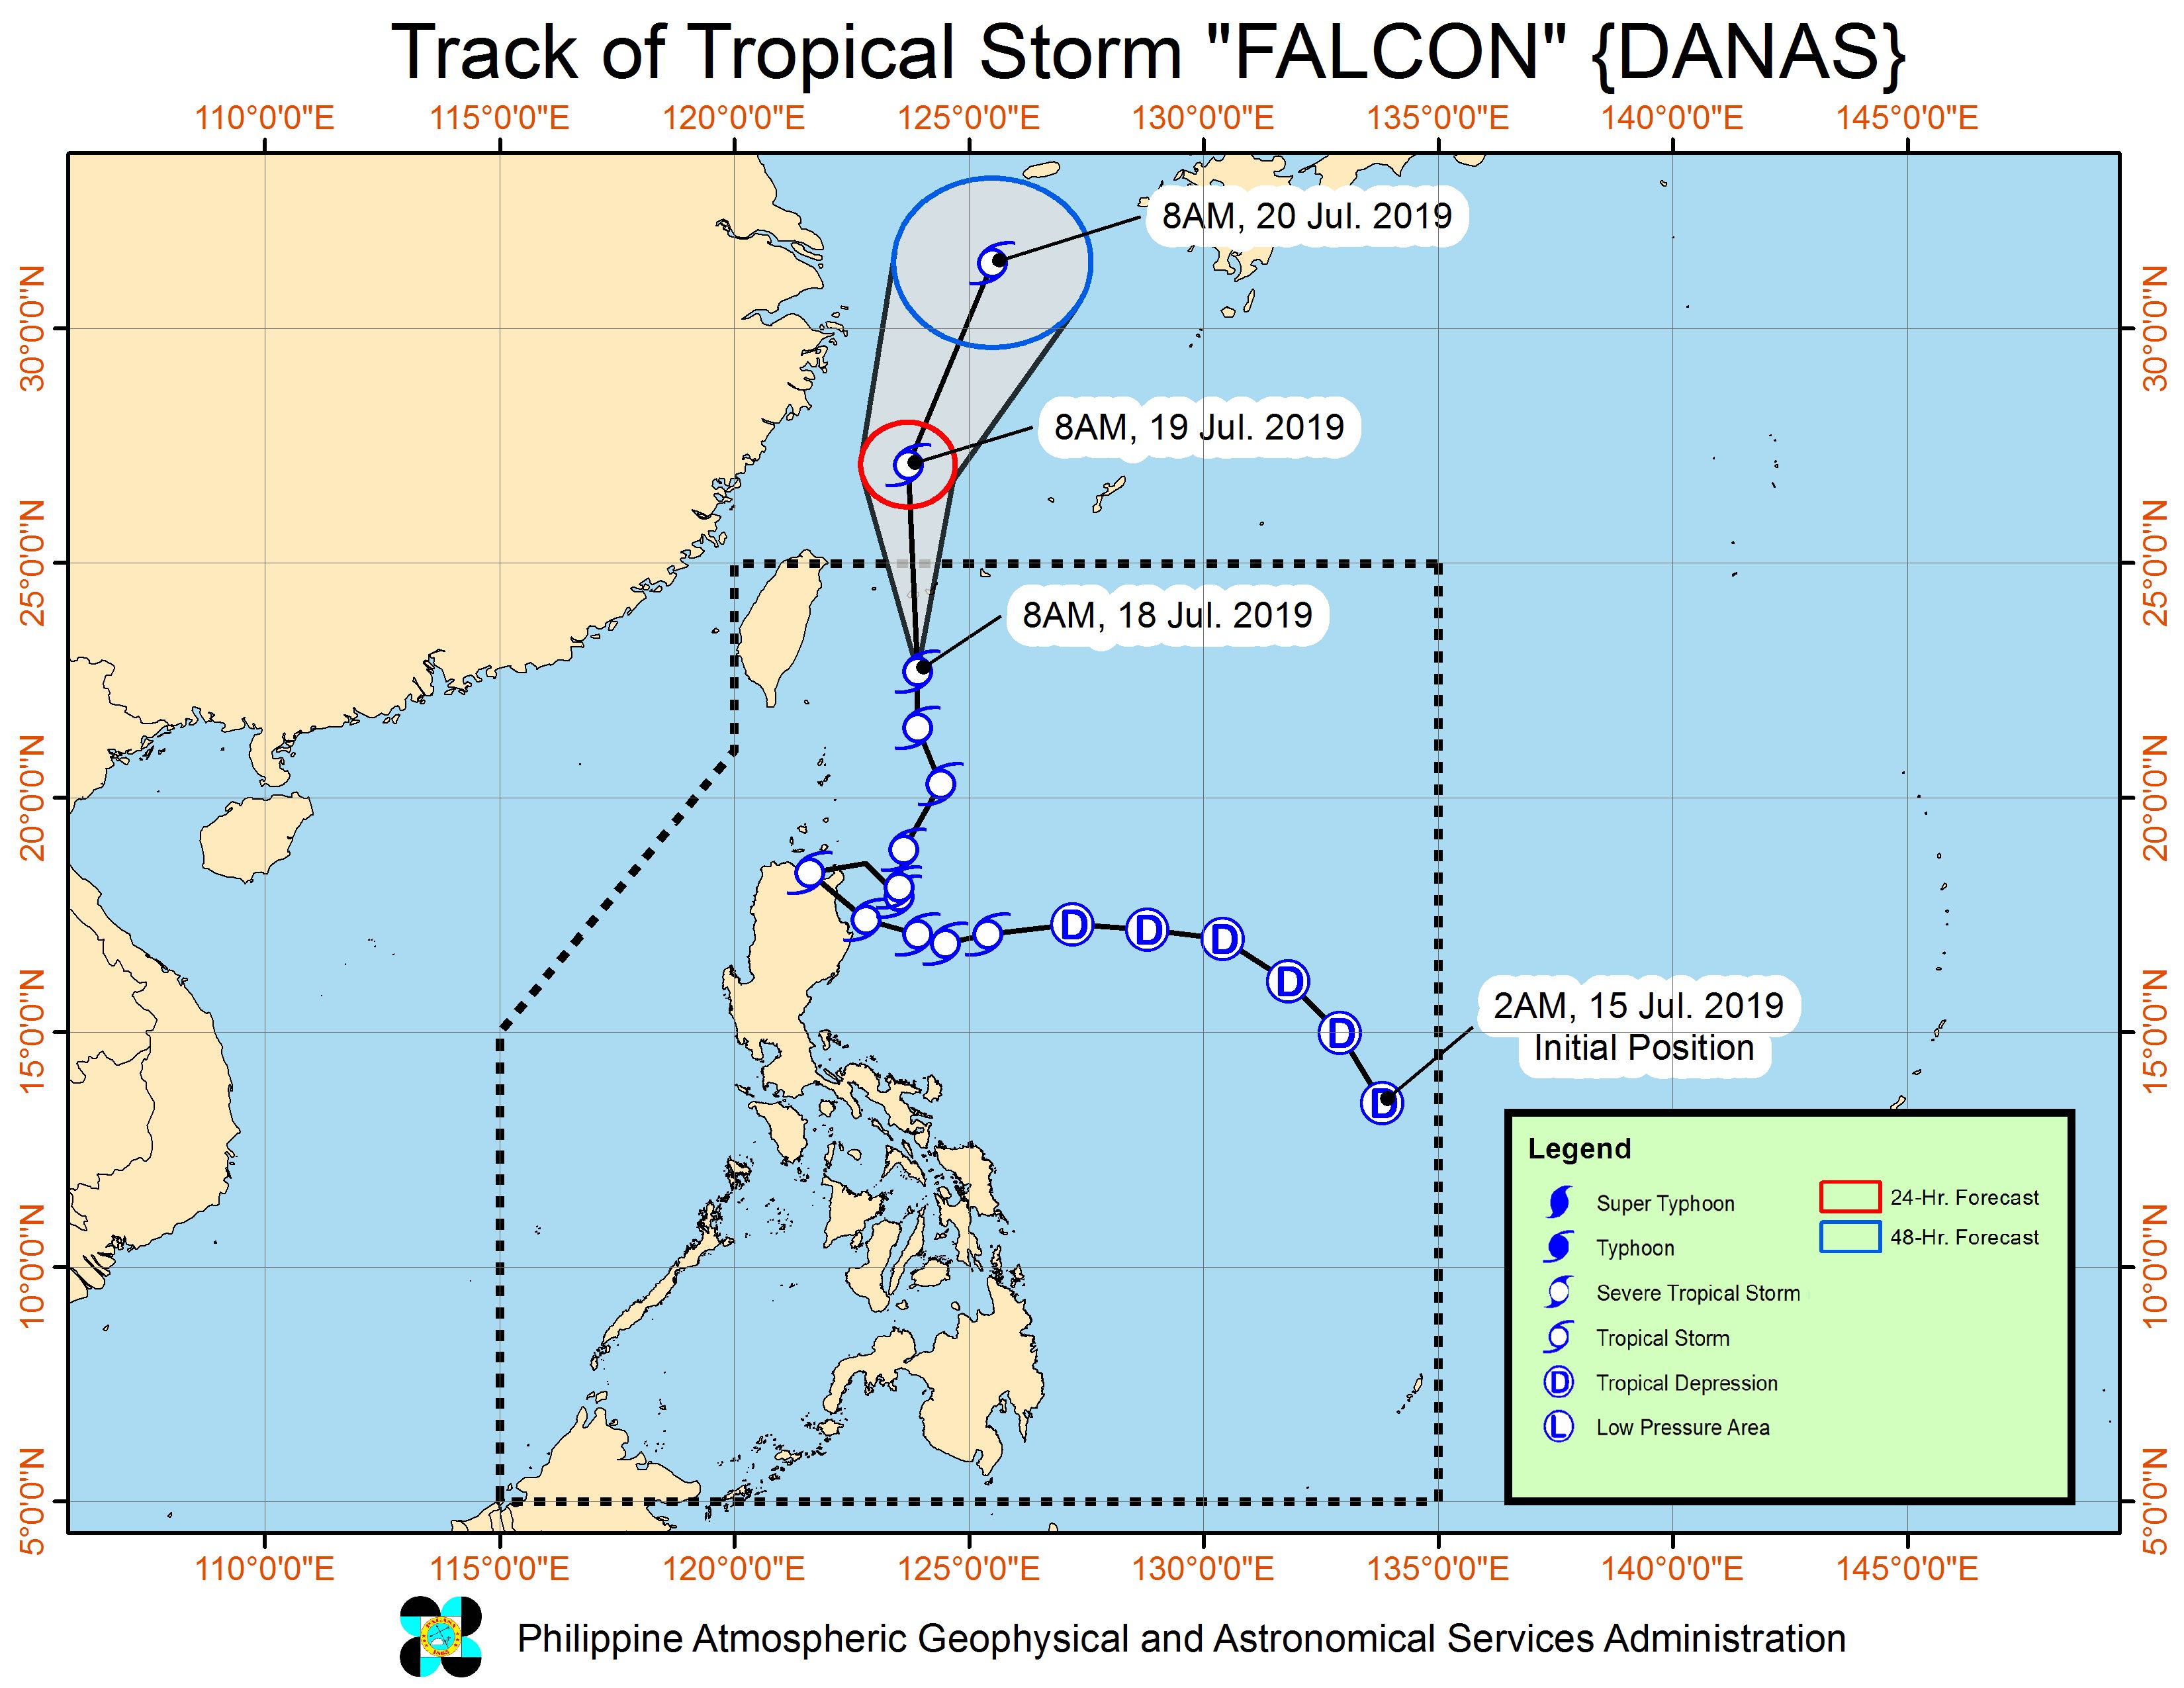 Forecast track of Tropical Storm Falcon (Danas) as of July 18, 2019, 11 am. Image from PAGASA